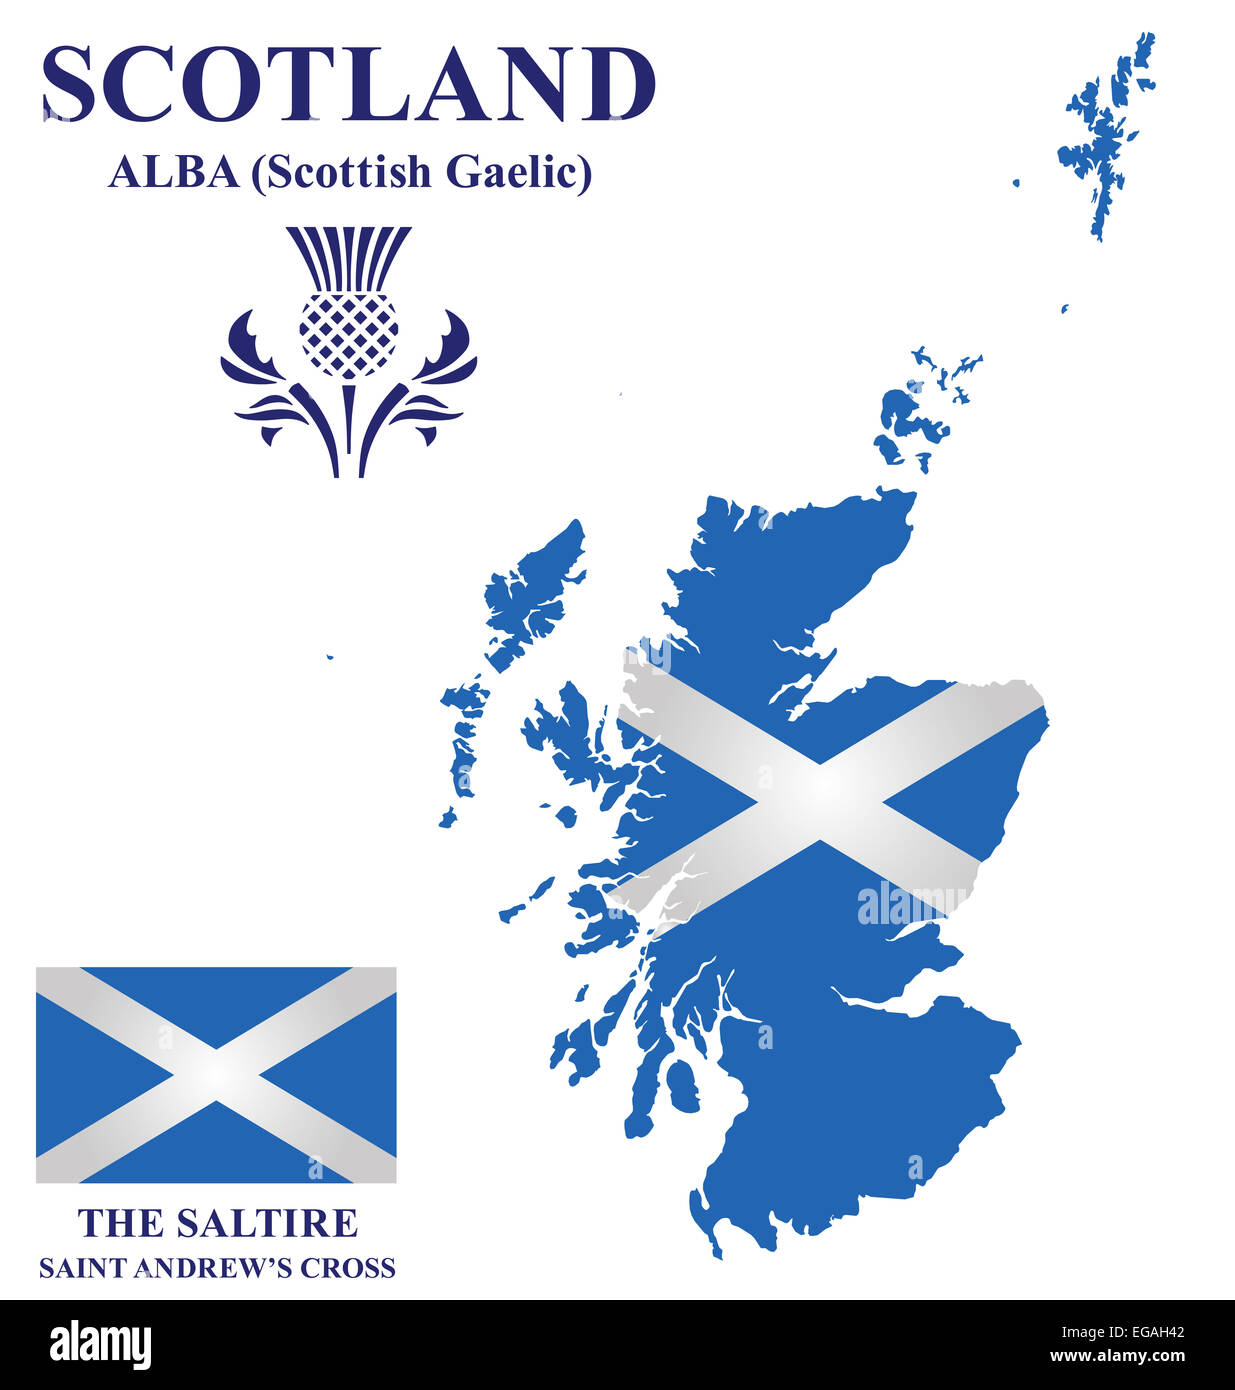 Flag and national emblem of Scotland overlaid on detailed outline map isolated on white background Stock Photo